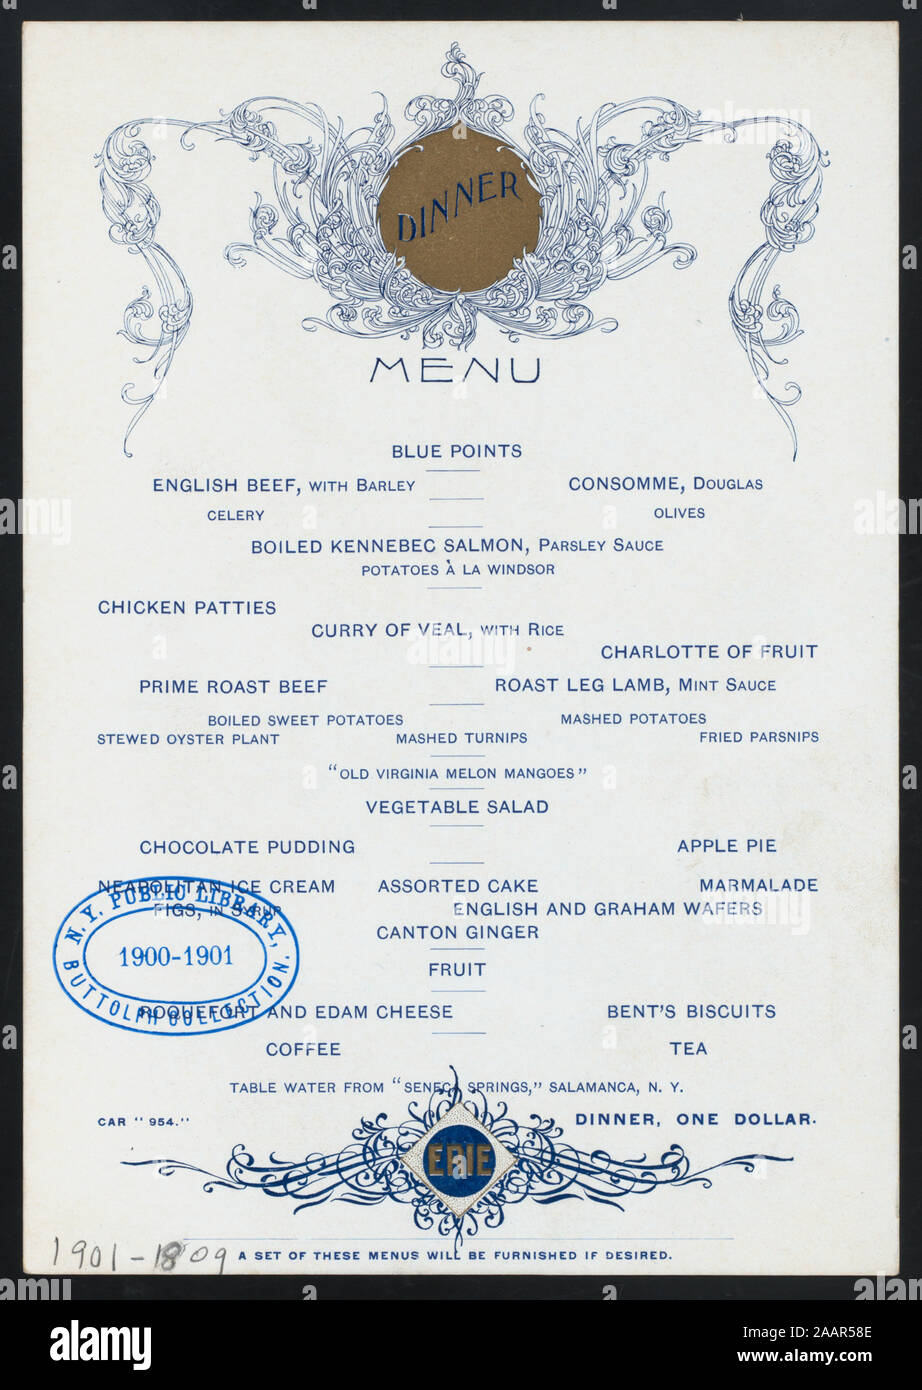 1809 Menu dinner (held by) erie railroad (-) (at) enroute along the